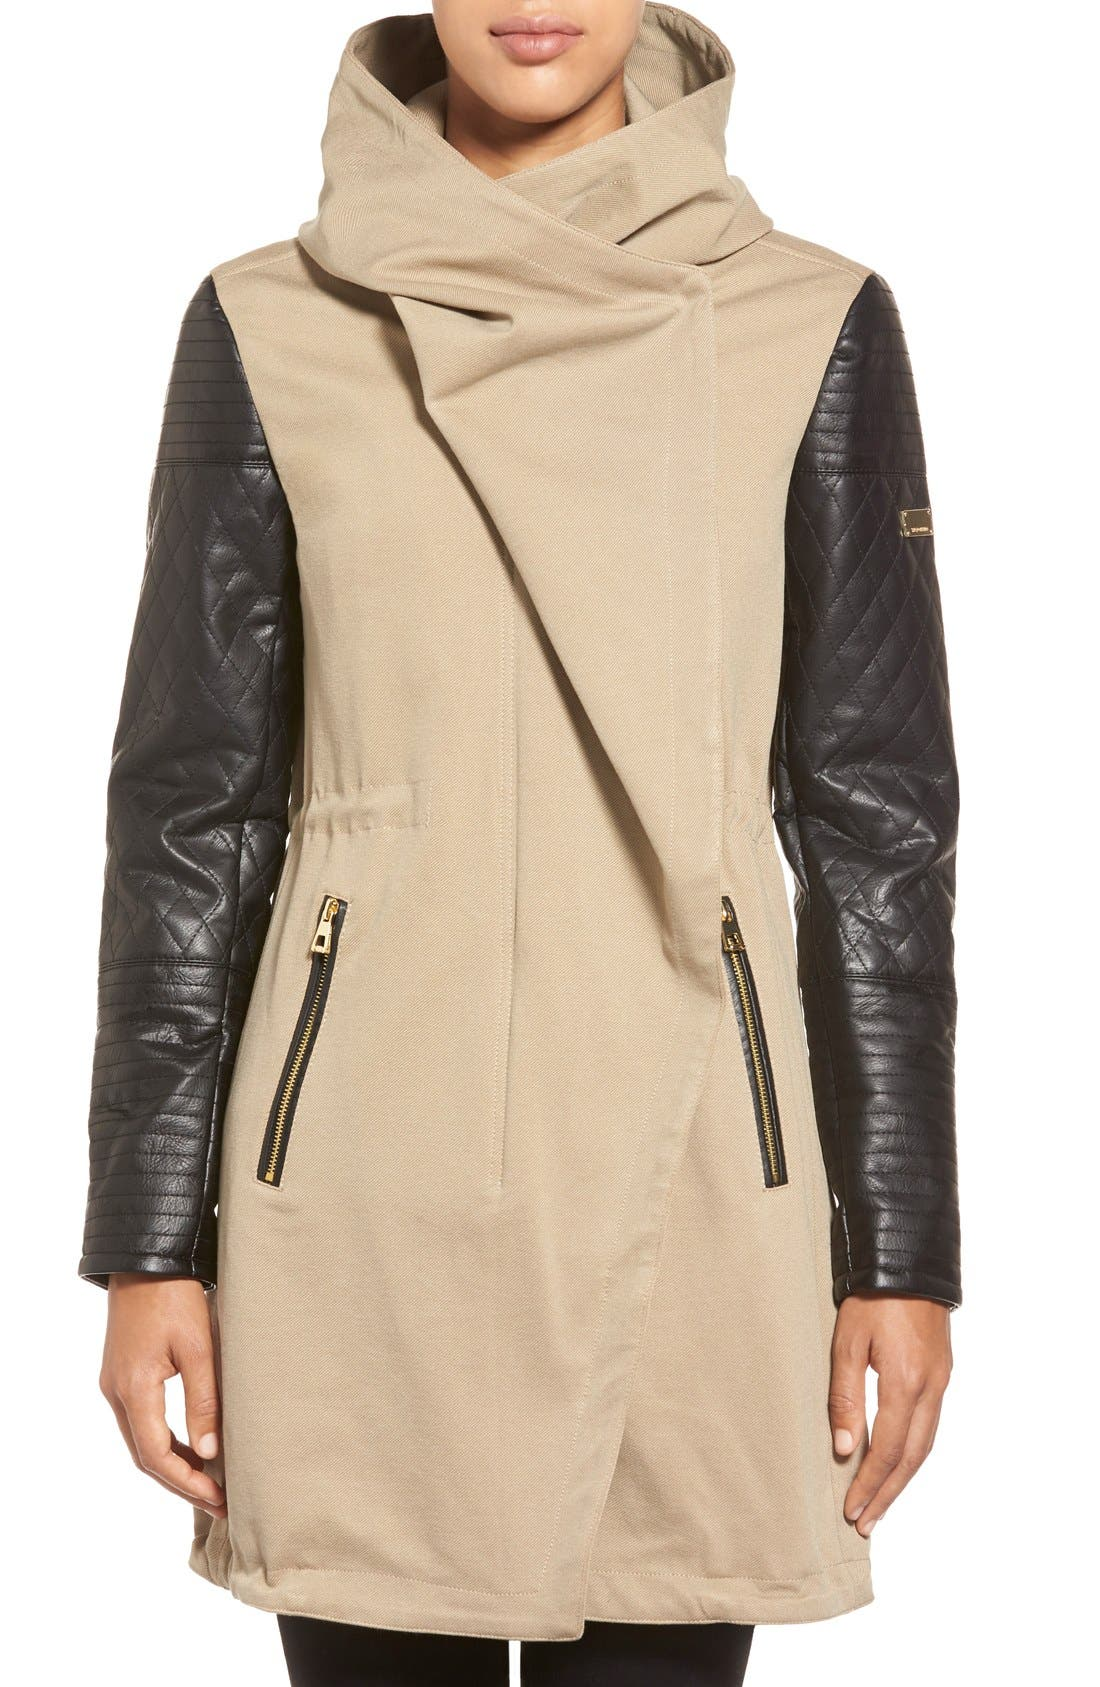 Alternate Image 1 Selected - Vince Camuto Faux Leather Sleeve Asymmetrical Anorak